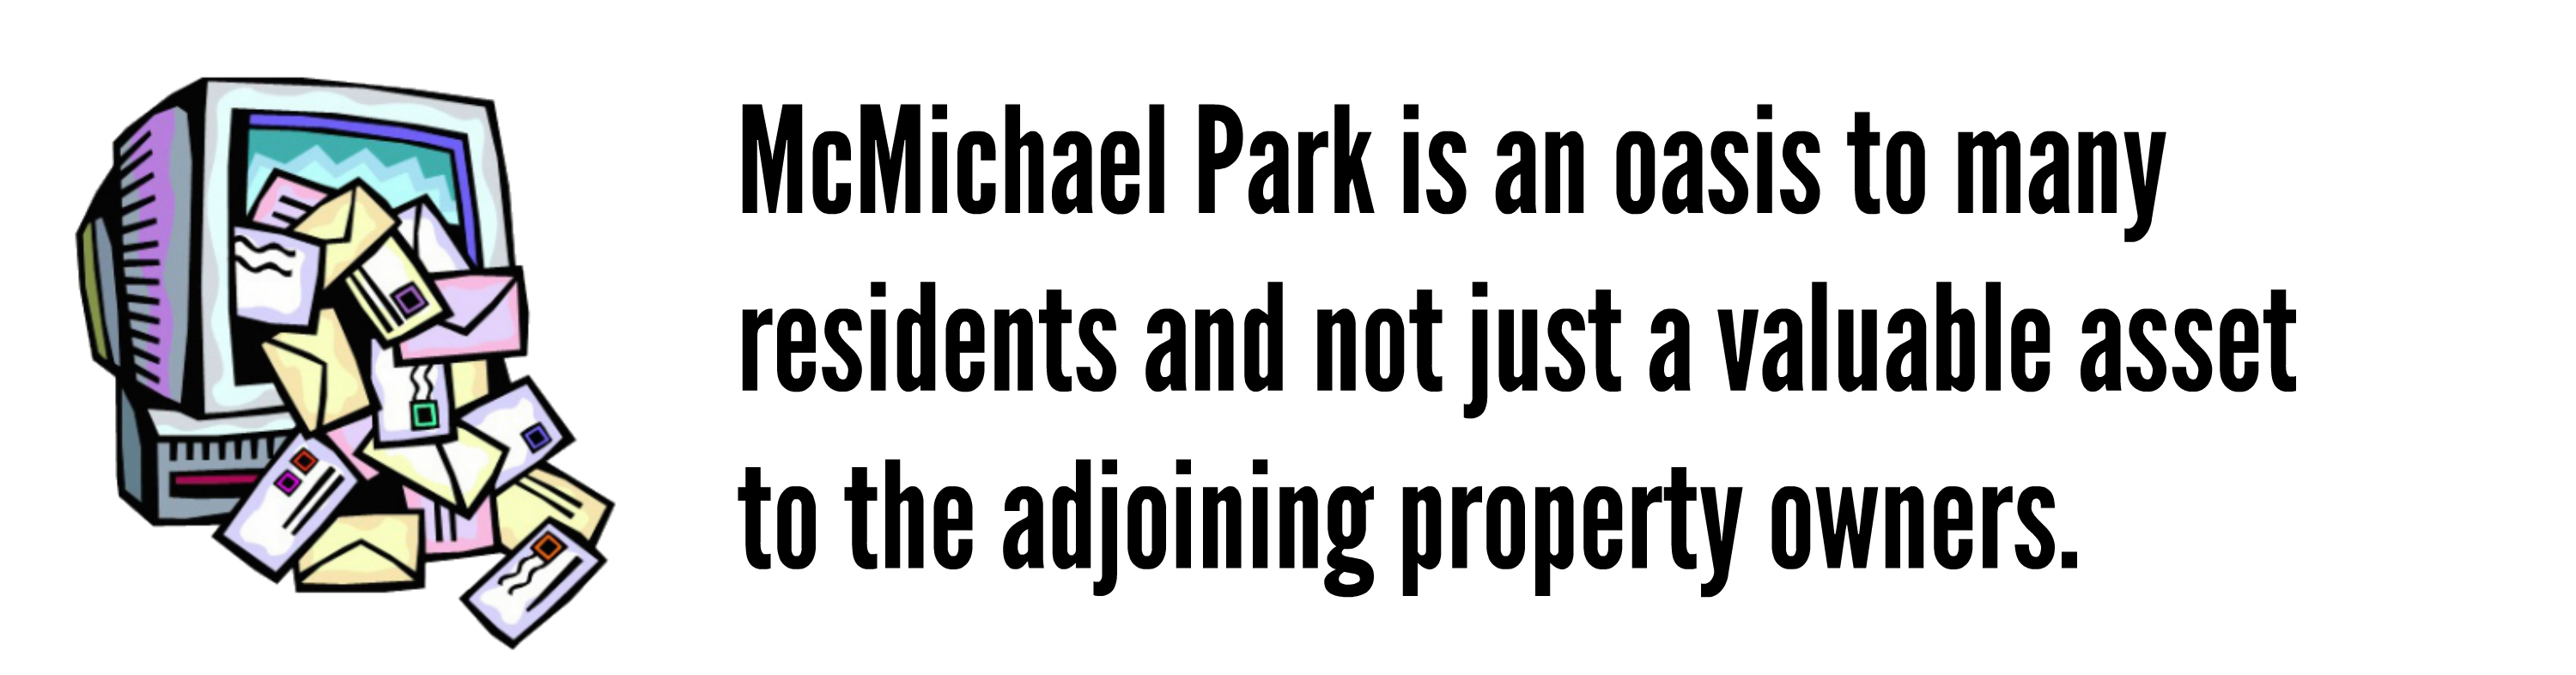 EastFallsLocal editorial Scott Cameron quote mcmichael more than just email